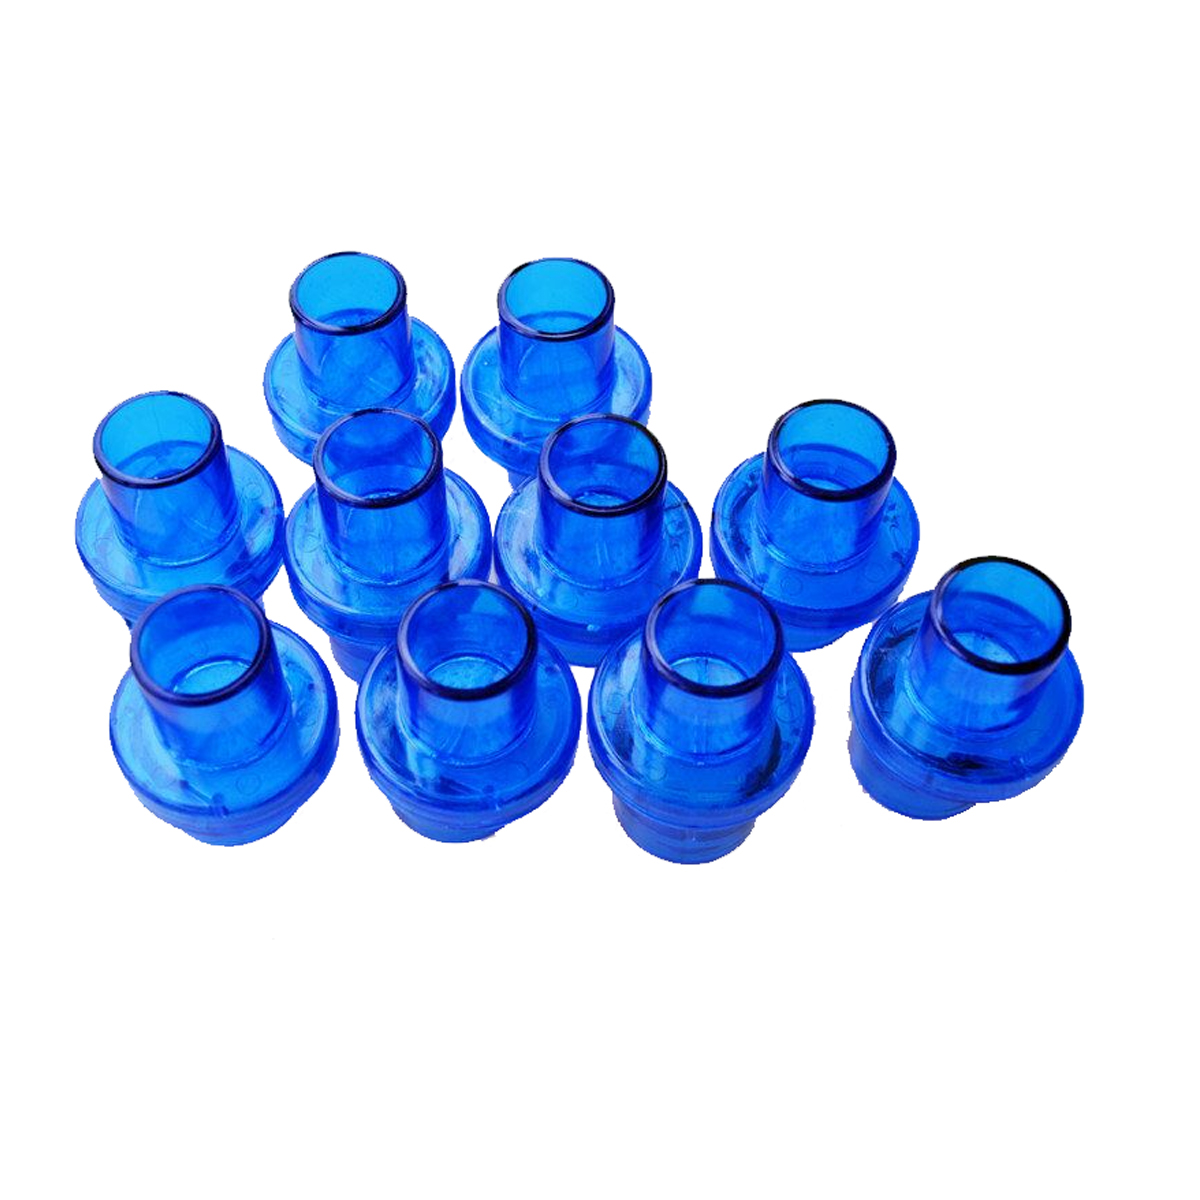 Beauty & Health 5pcs/pack Cpr Mask Training Valves With One-way Valve W/filter Dia 22mm For Cpr Resuscitator Practice Emergecy Rescue Tool Toiletry Kits